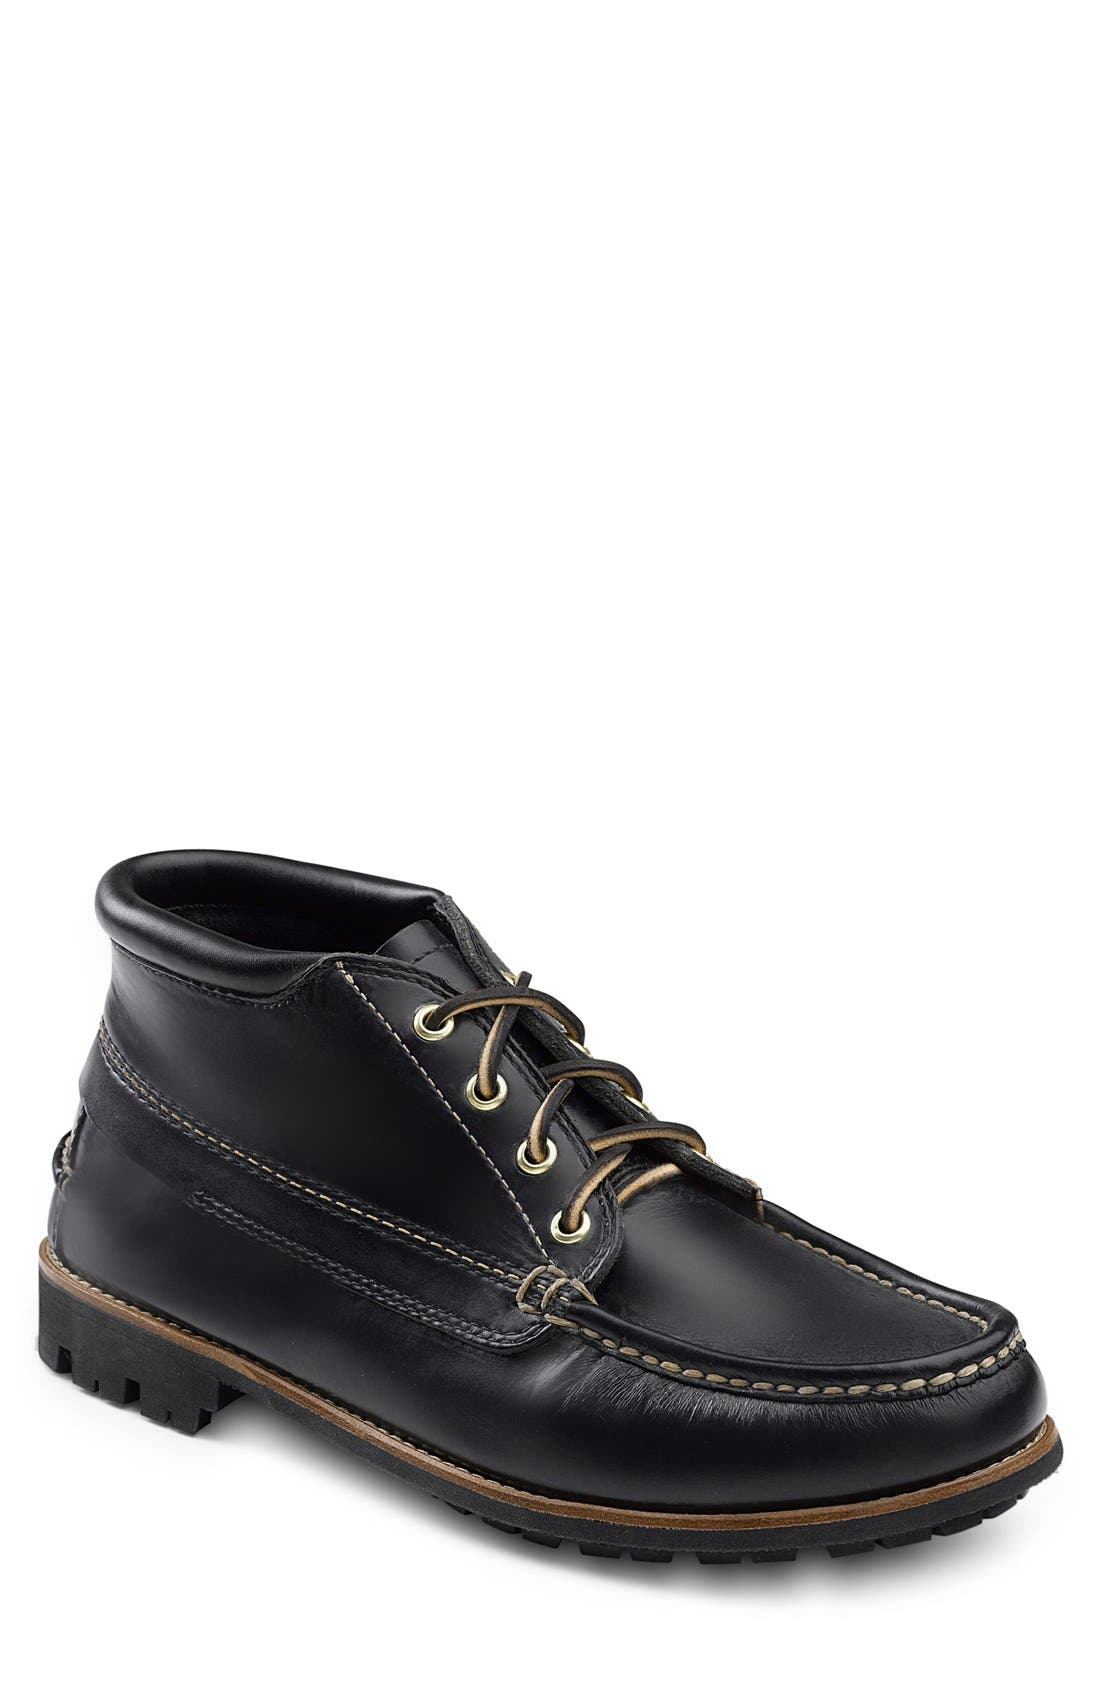 'Abbott' Chukka Boot,                             Main thumbnail 1, color,